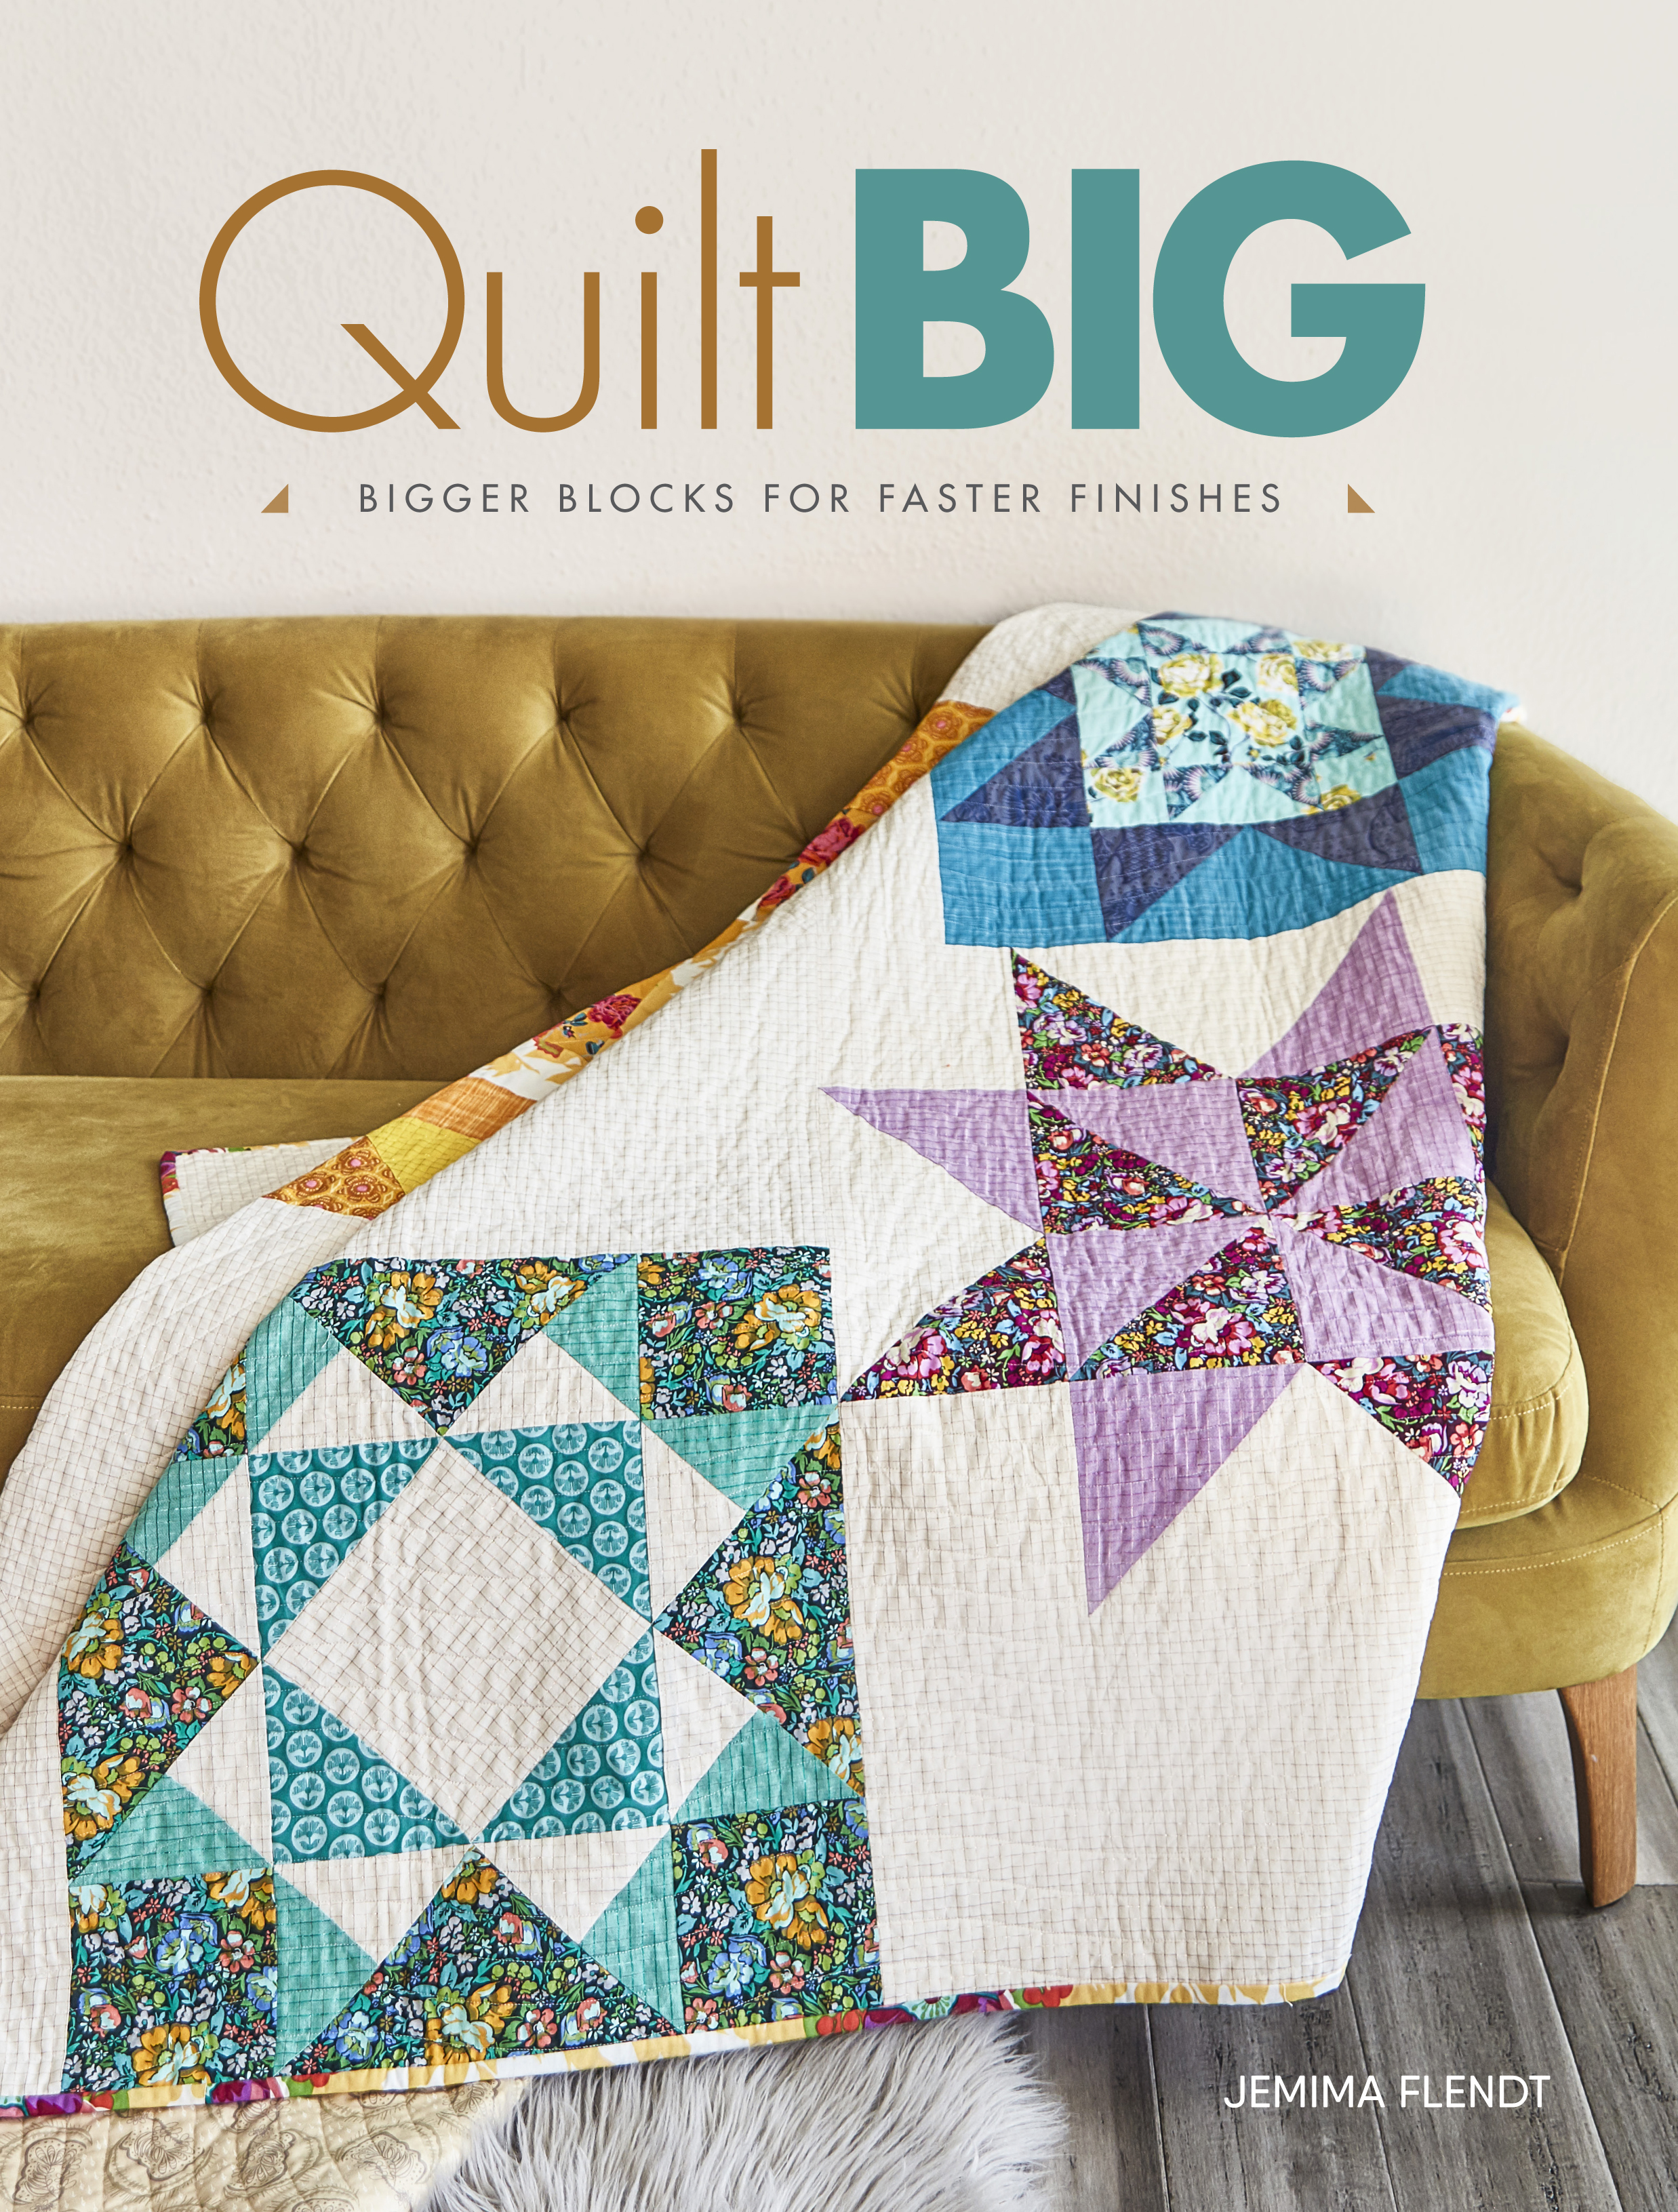 Quilt BIG Book Cover.jpg